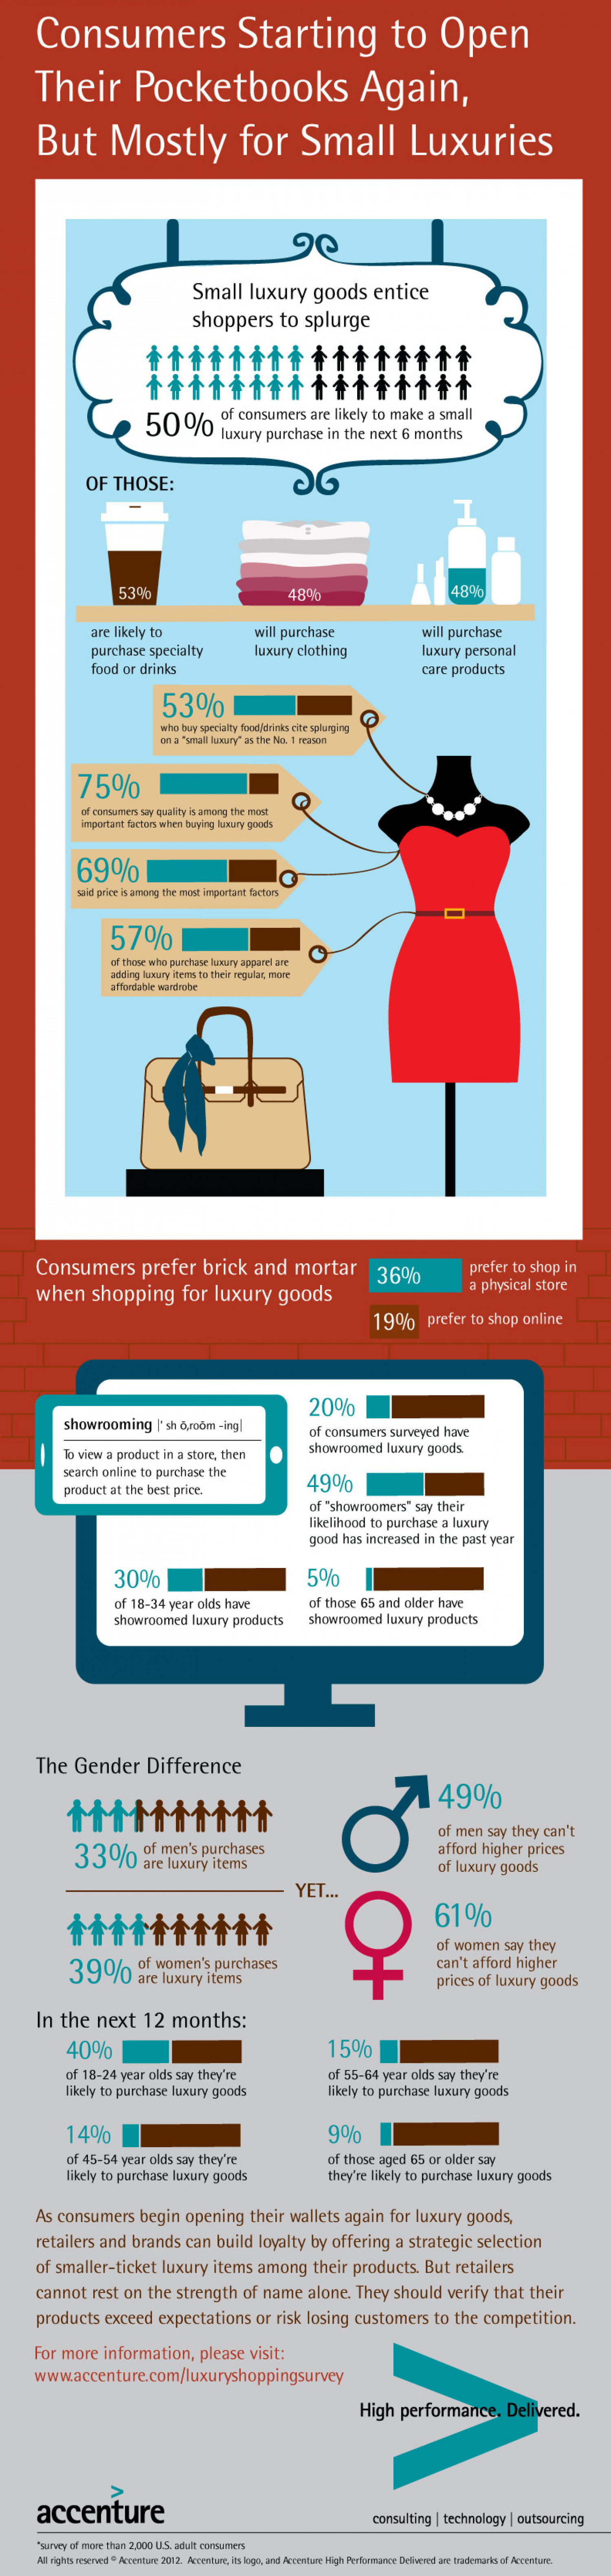 Consumers Starting to Open Their Pocketbooks Again, But Mostly for Small Luxuries Infographic